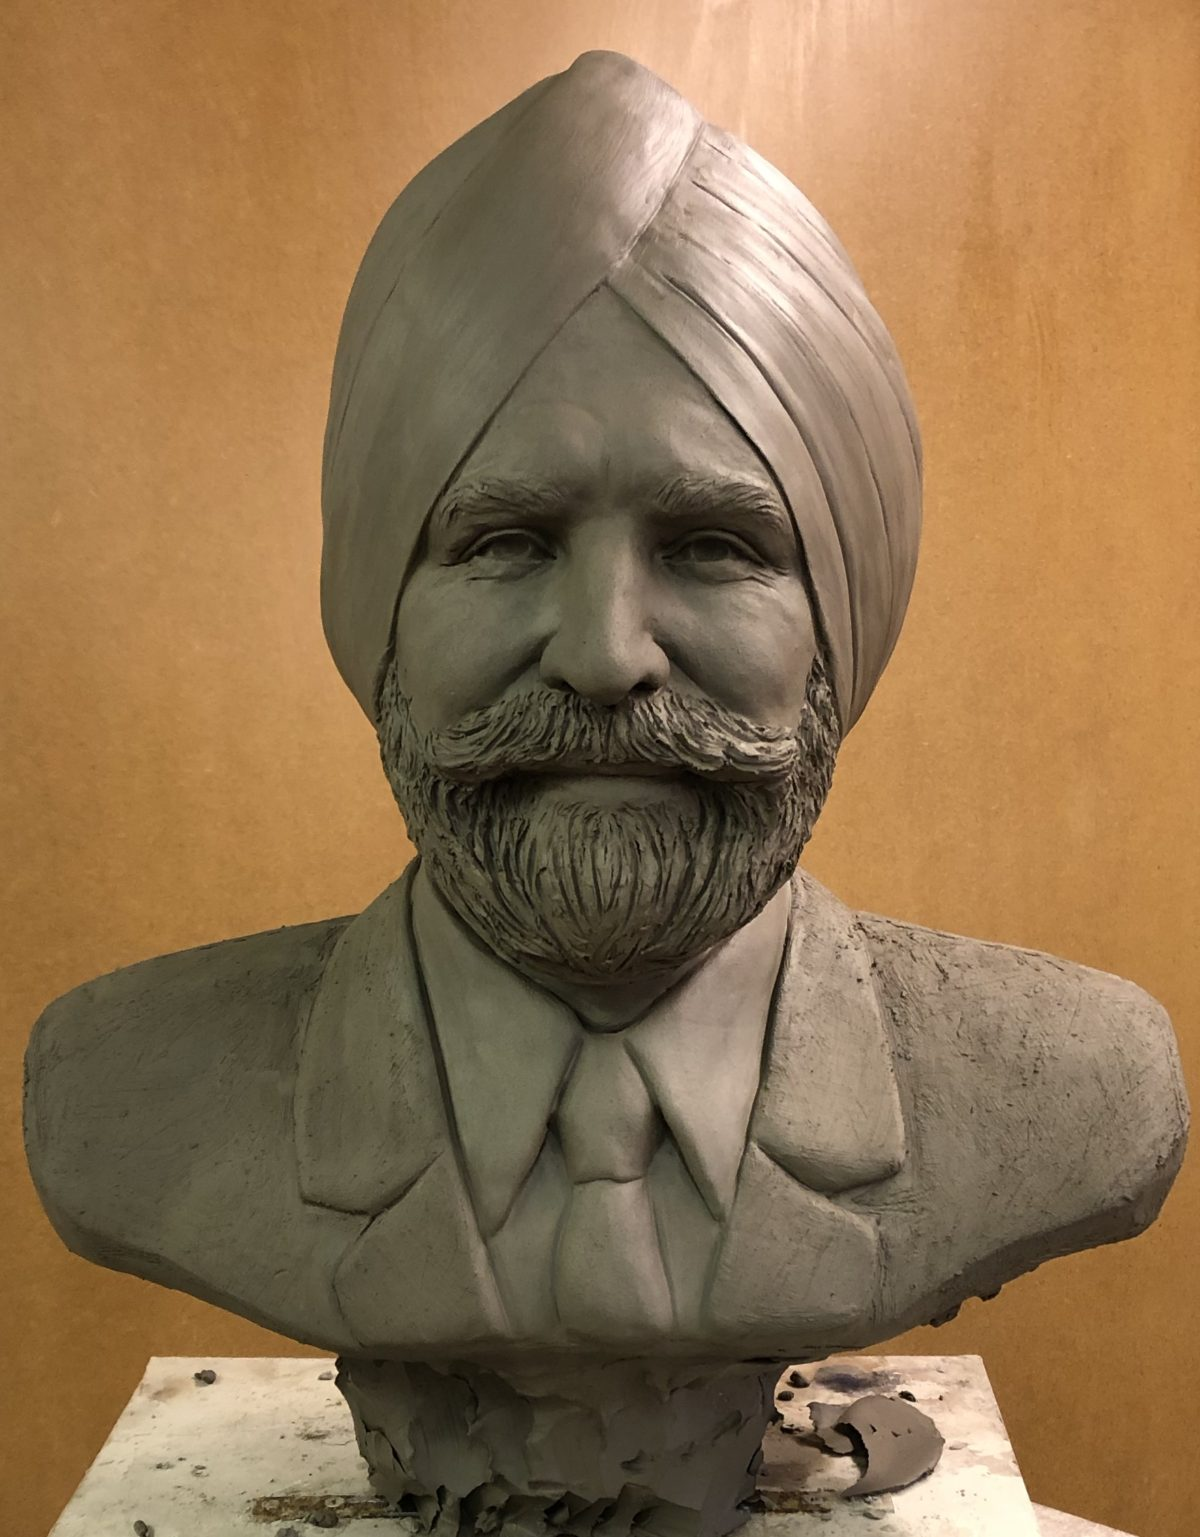 Sculpture portrait of Sikh bust